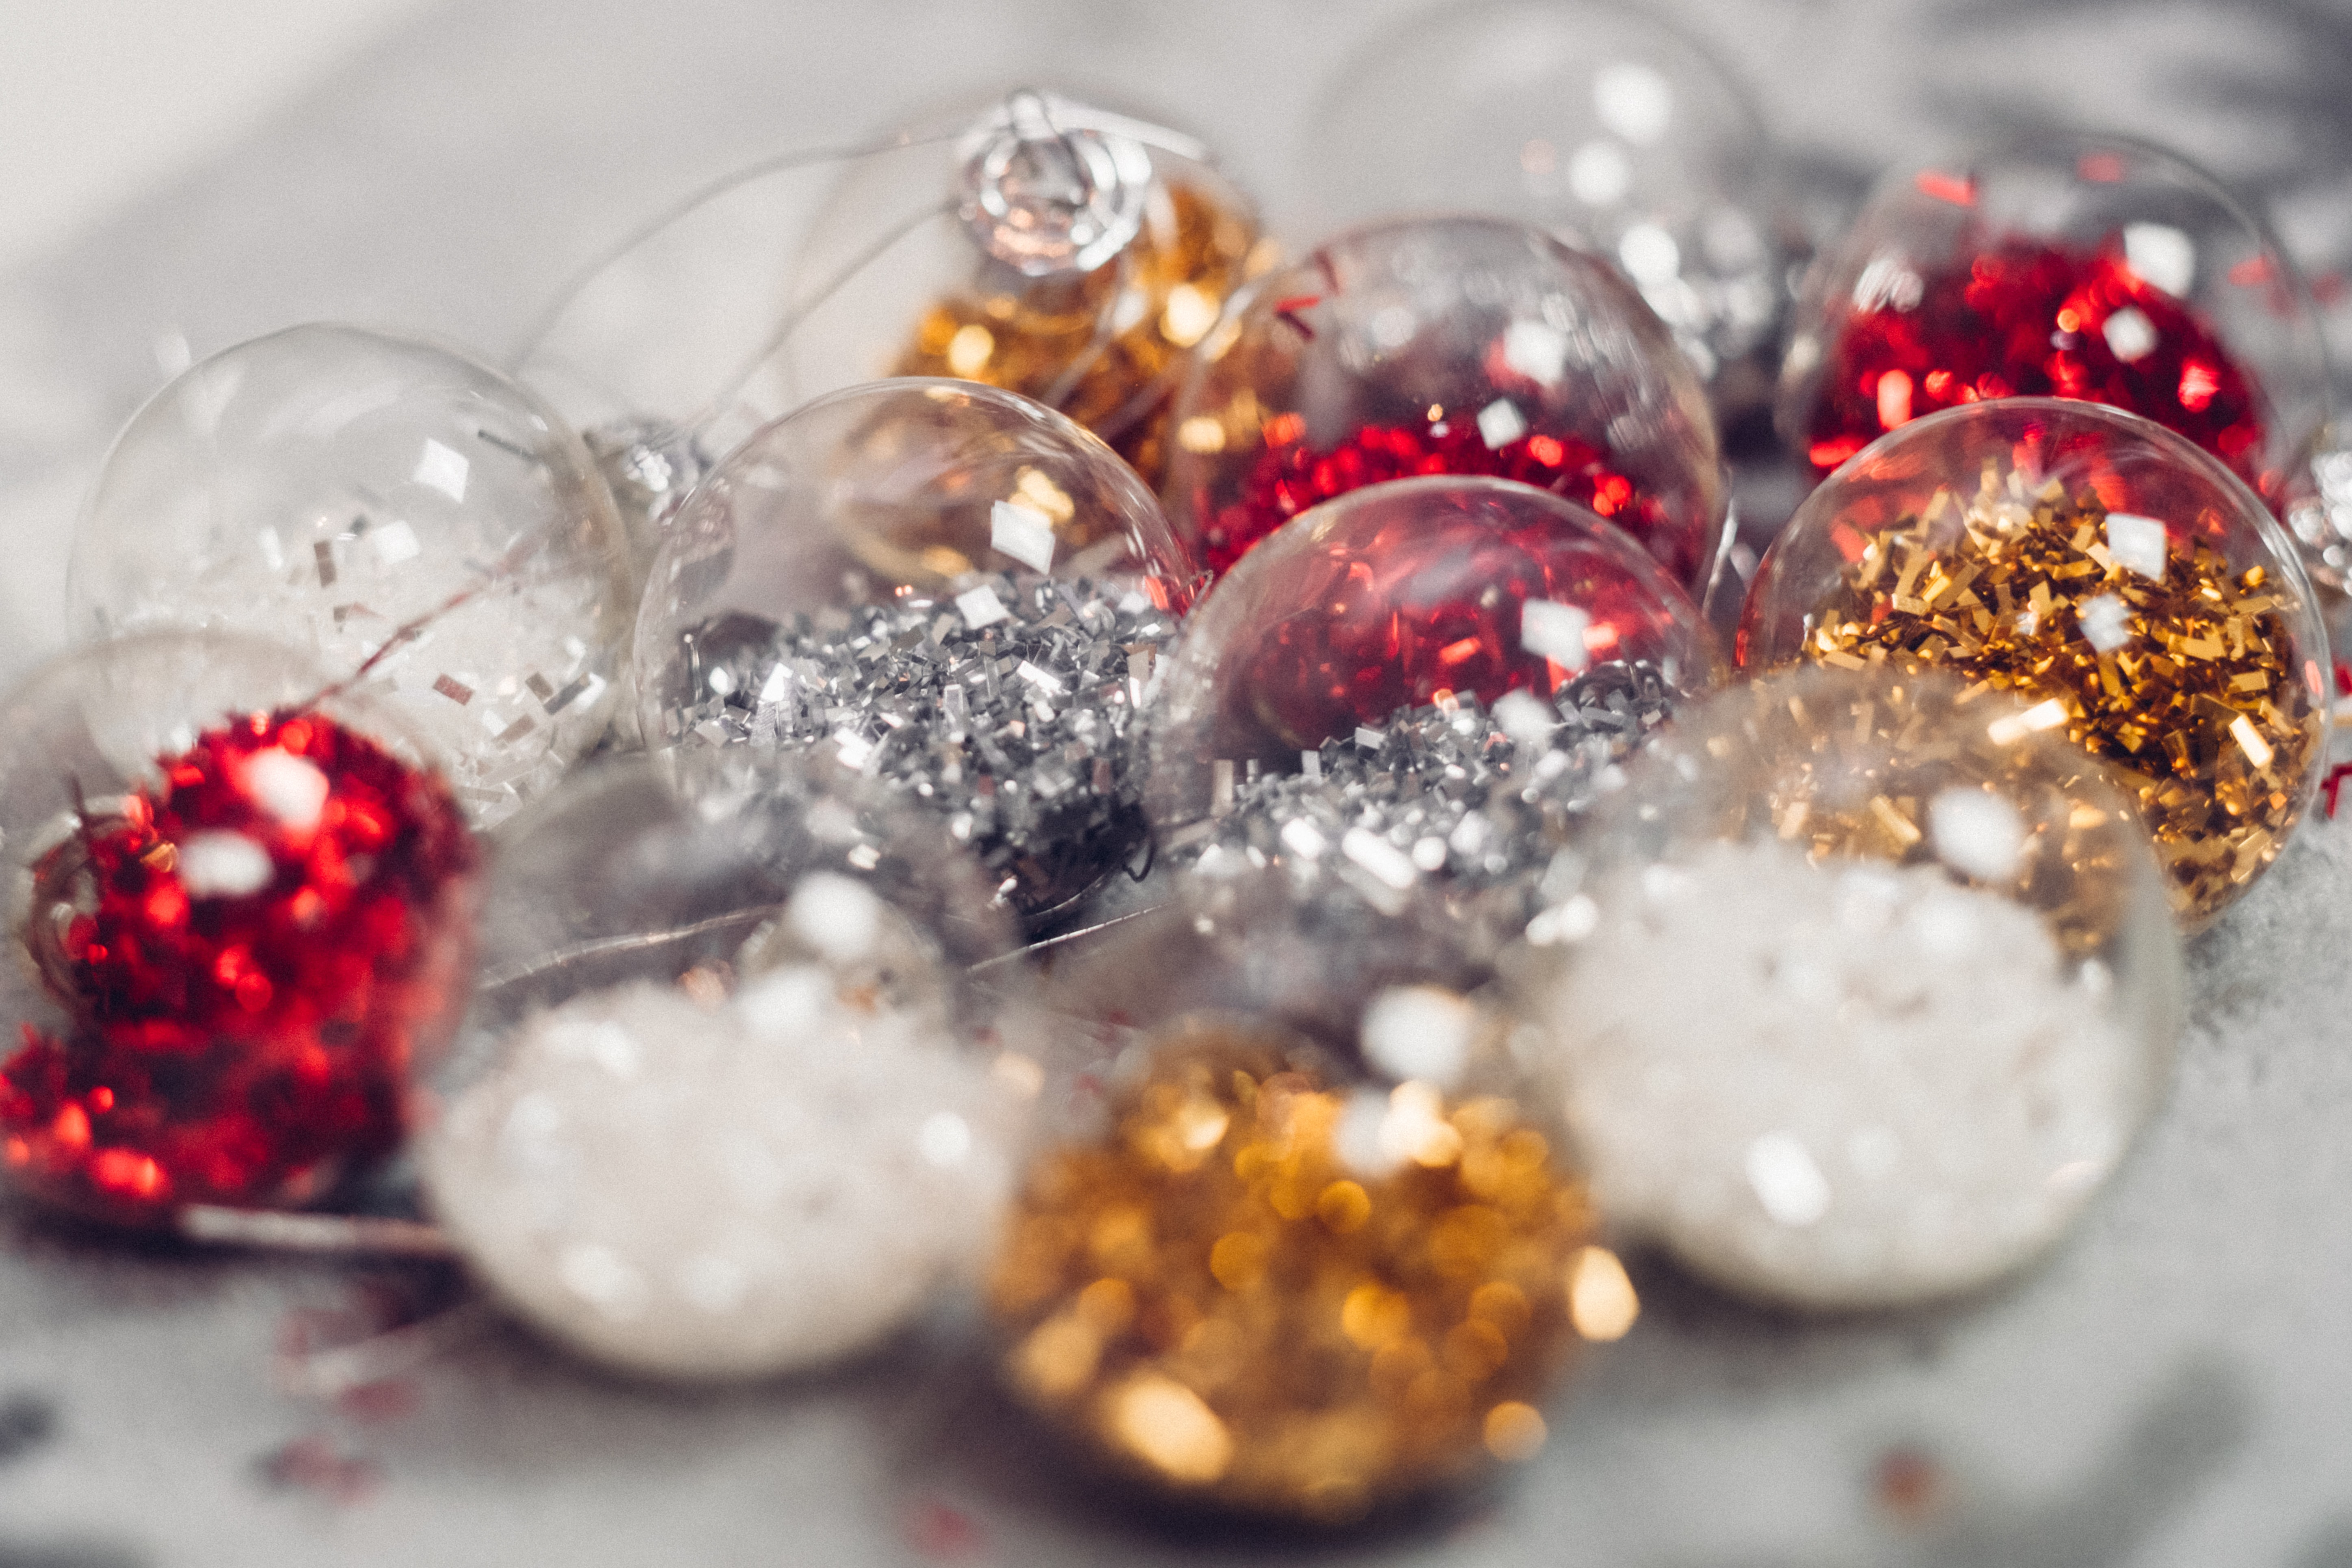 red, gold, white, and silver decorations